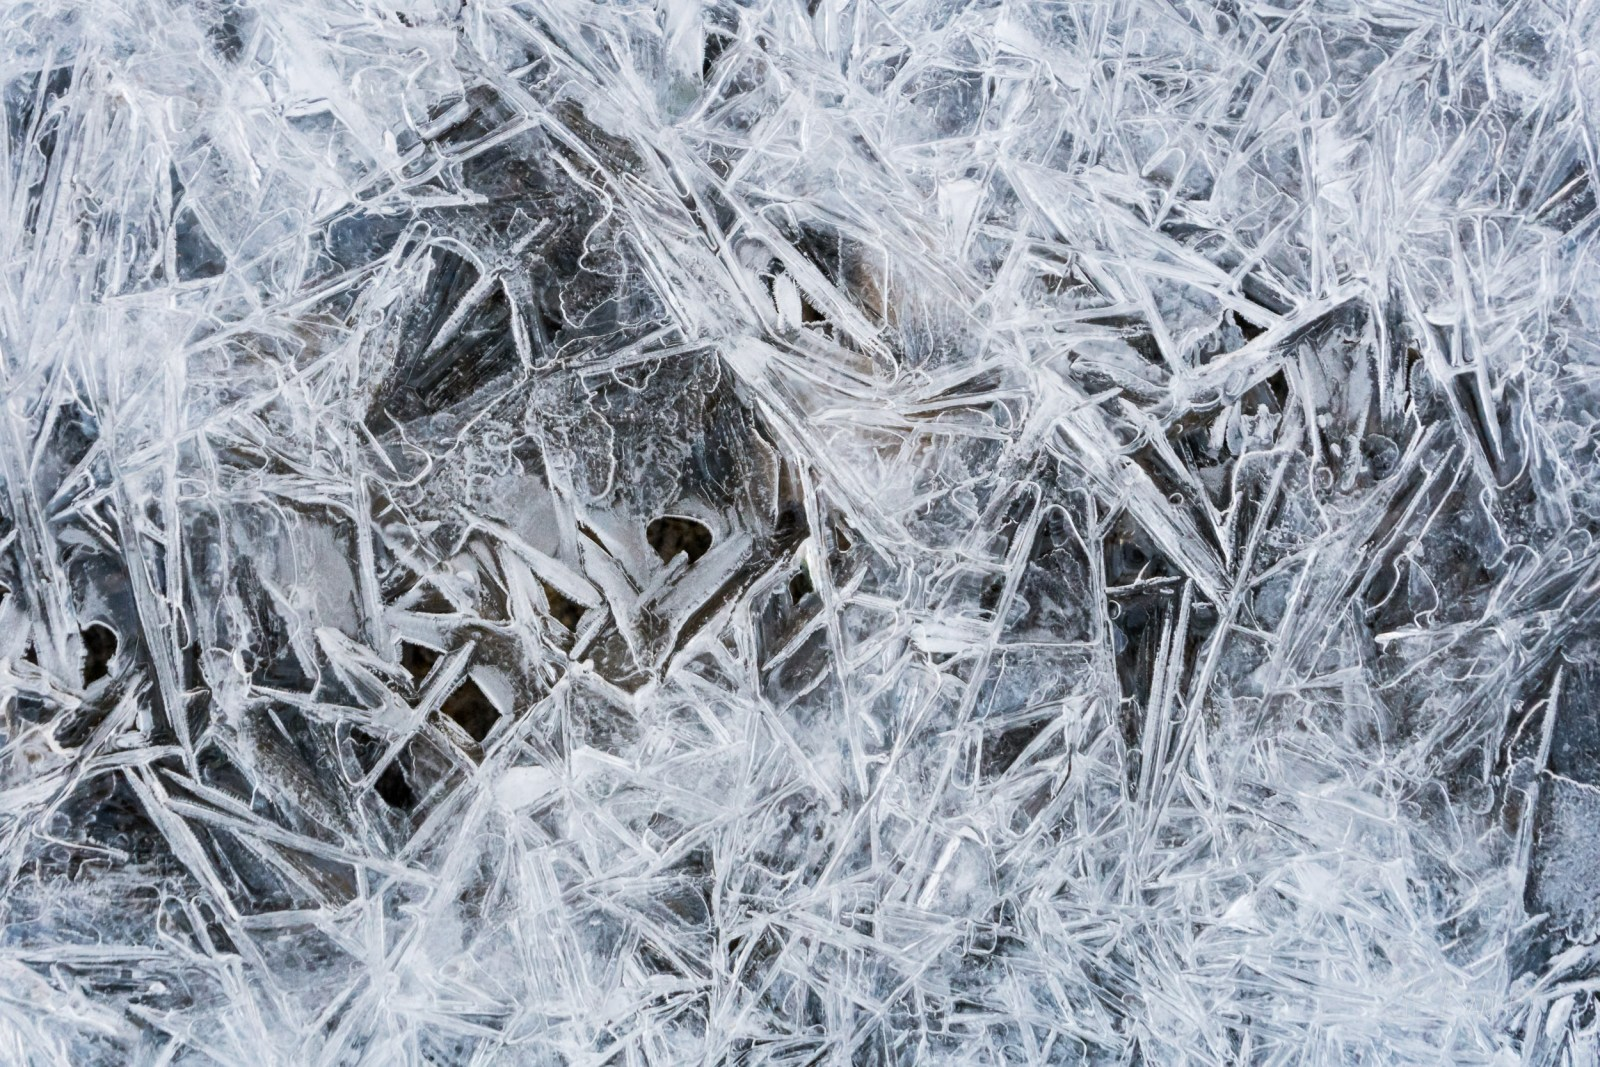 Abstract crystals of ice frozen pattern on warming planet